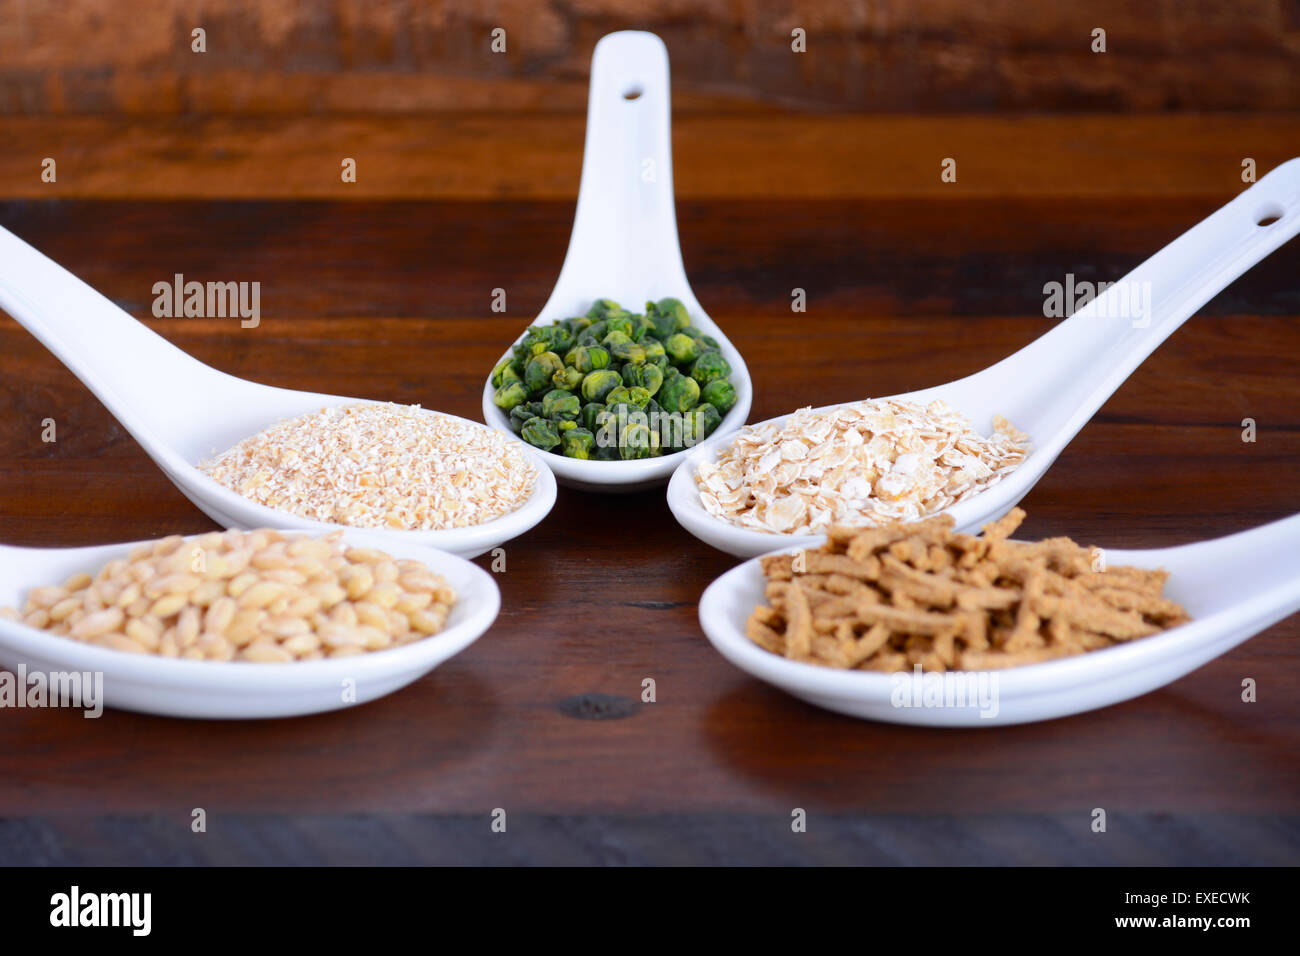 Healthy High Fiber Prebiotic Grains in serving spoons, including wheat bran cereal, oat flakes, dried legume peas, Stock Photo